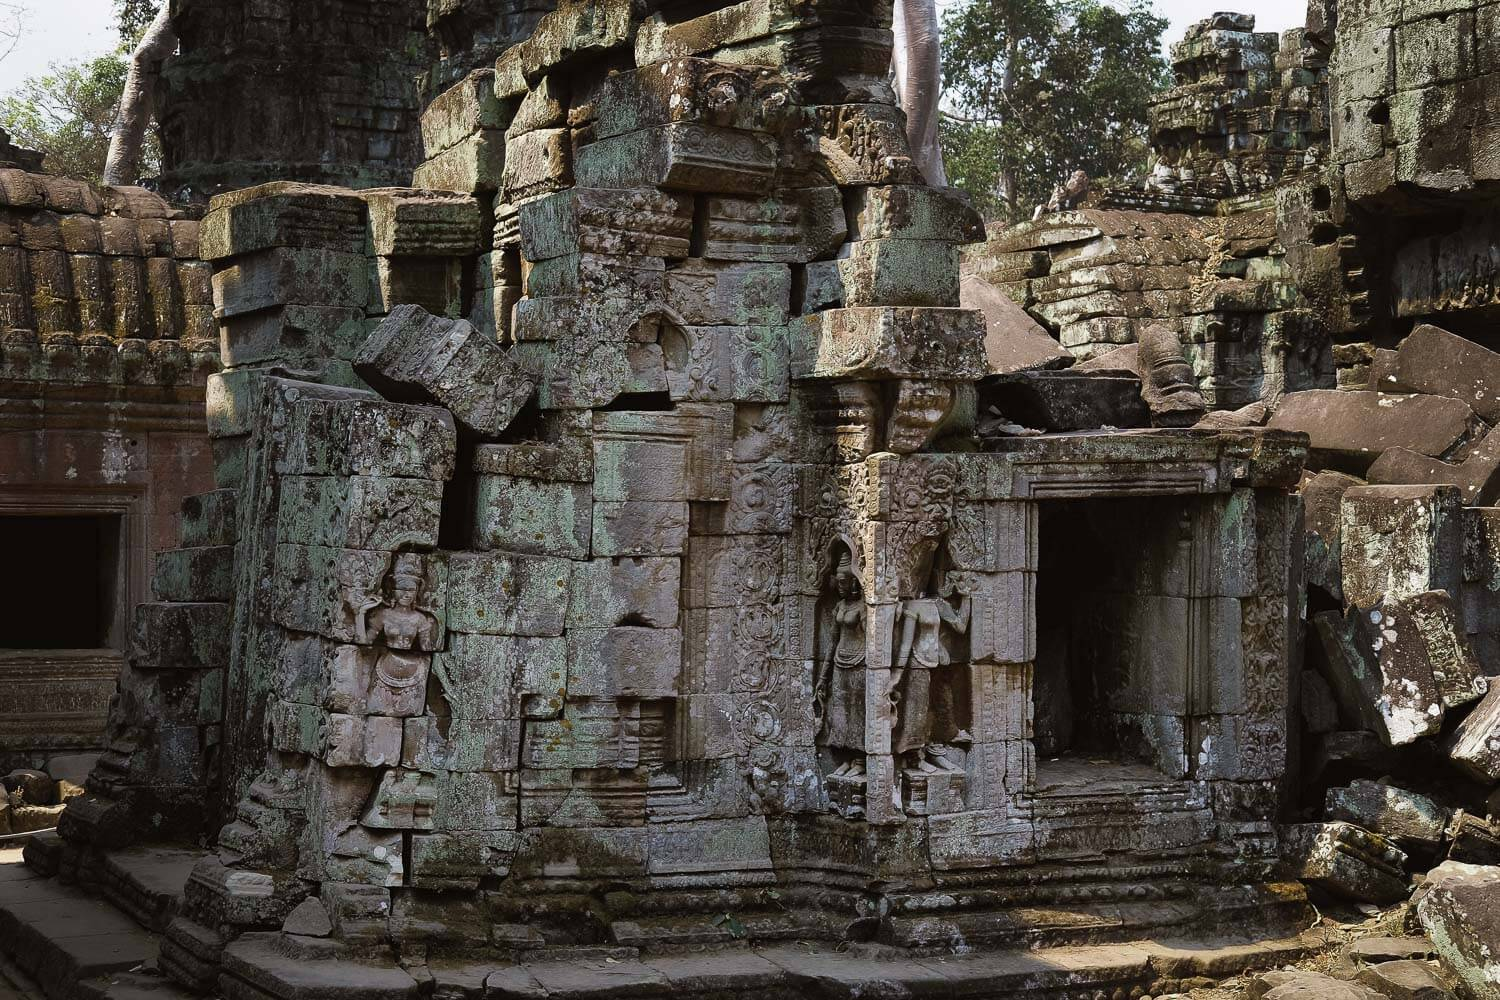 Blocks of the temple of Ta Prohm, falling off.     #siemreap #taprohm #travelguide #angkorwat #siemreapitinerary #cambodia #travelphotography #landscapephotography #fujifilm #siemreapprivatetour